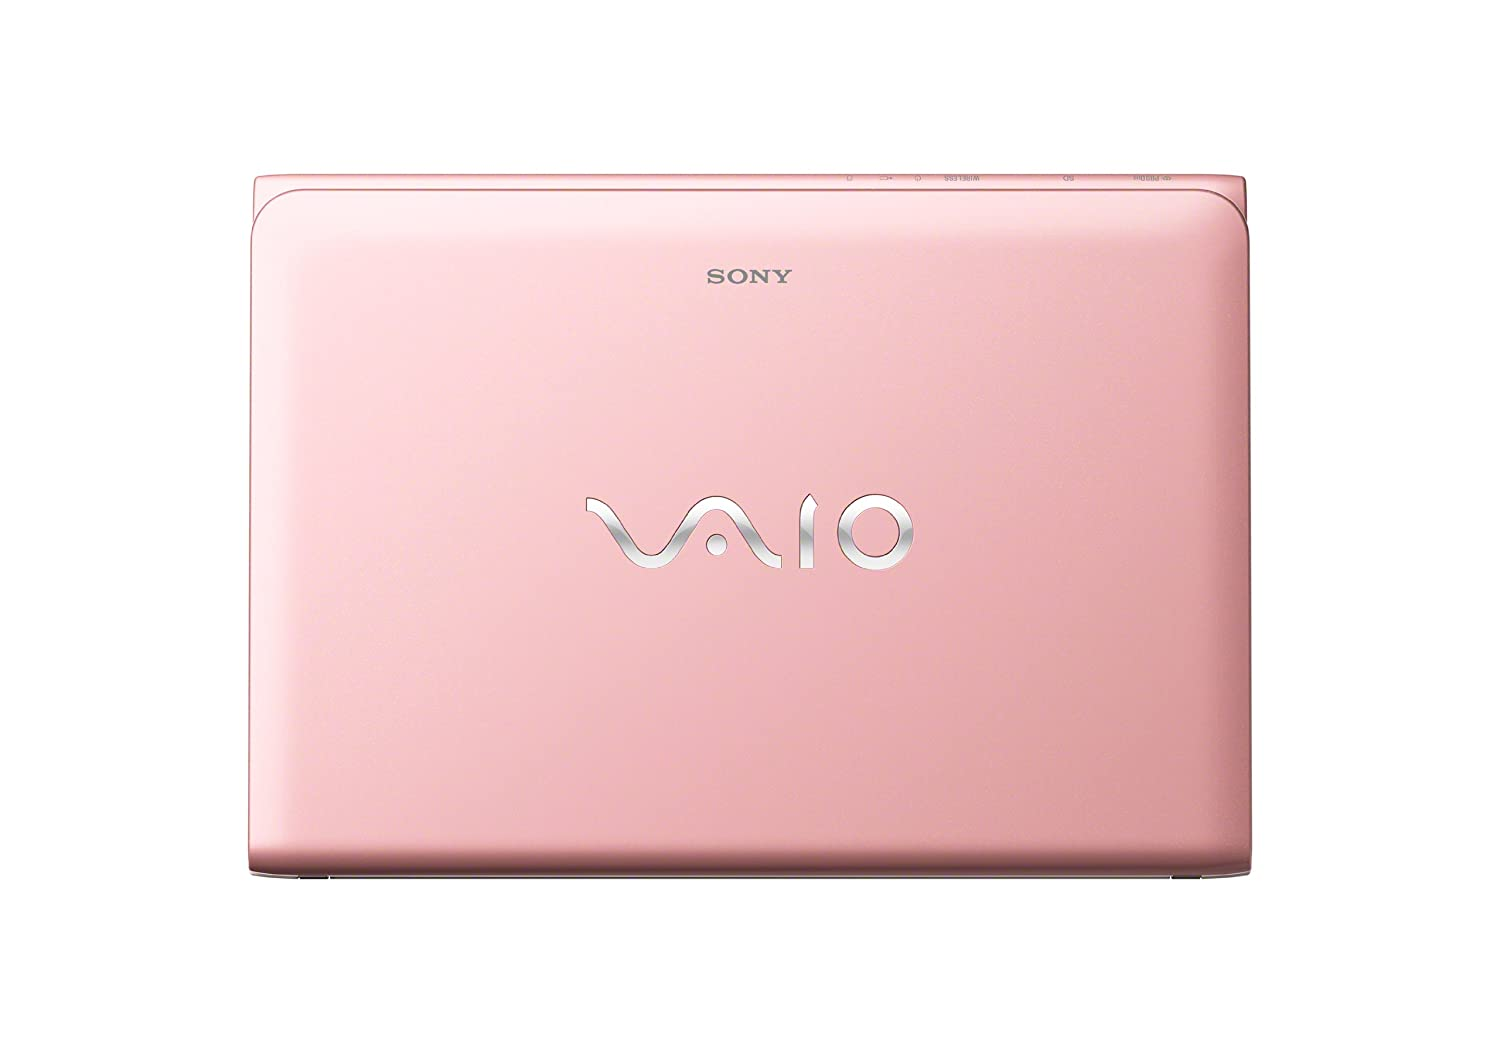 Amazon.com: Sony VAIO E Series SVE14135CXP 14-Inch Laptop (Pink): Computers & Accessories